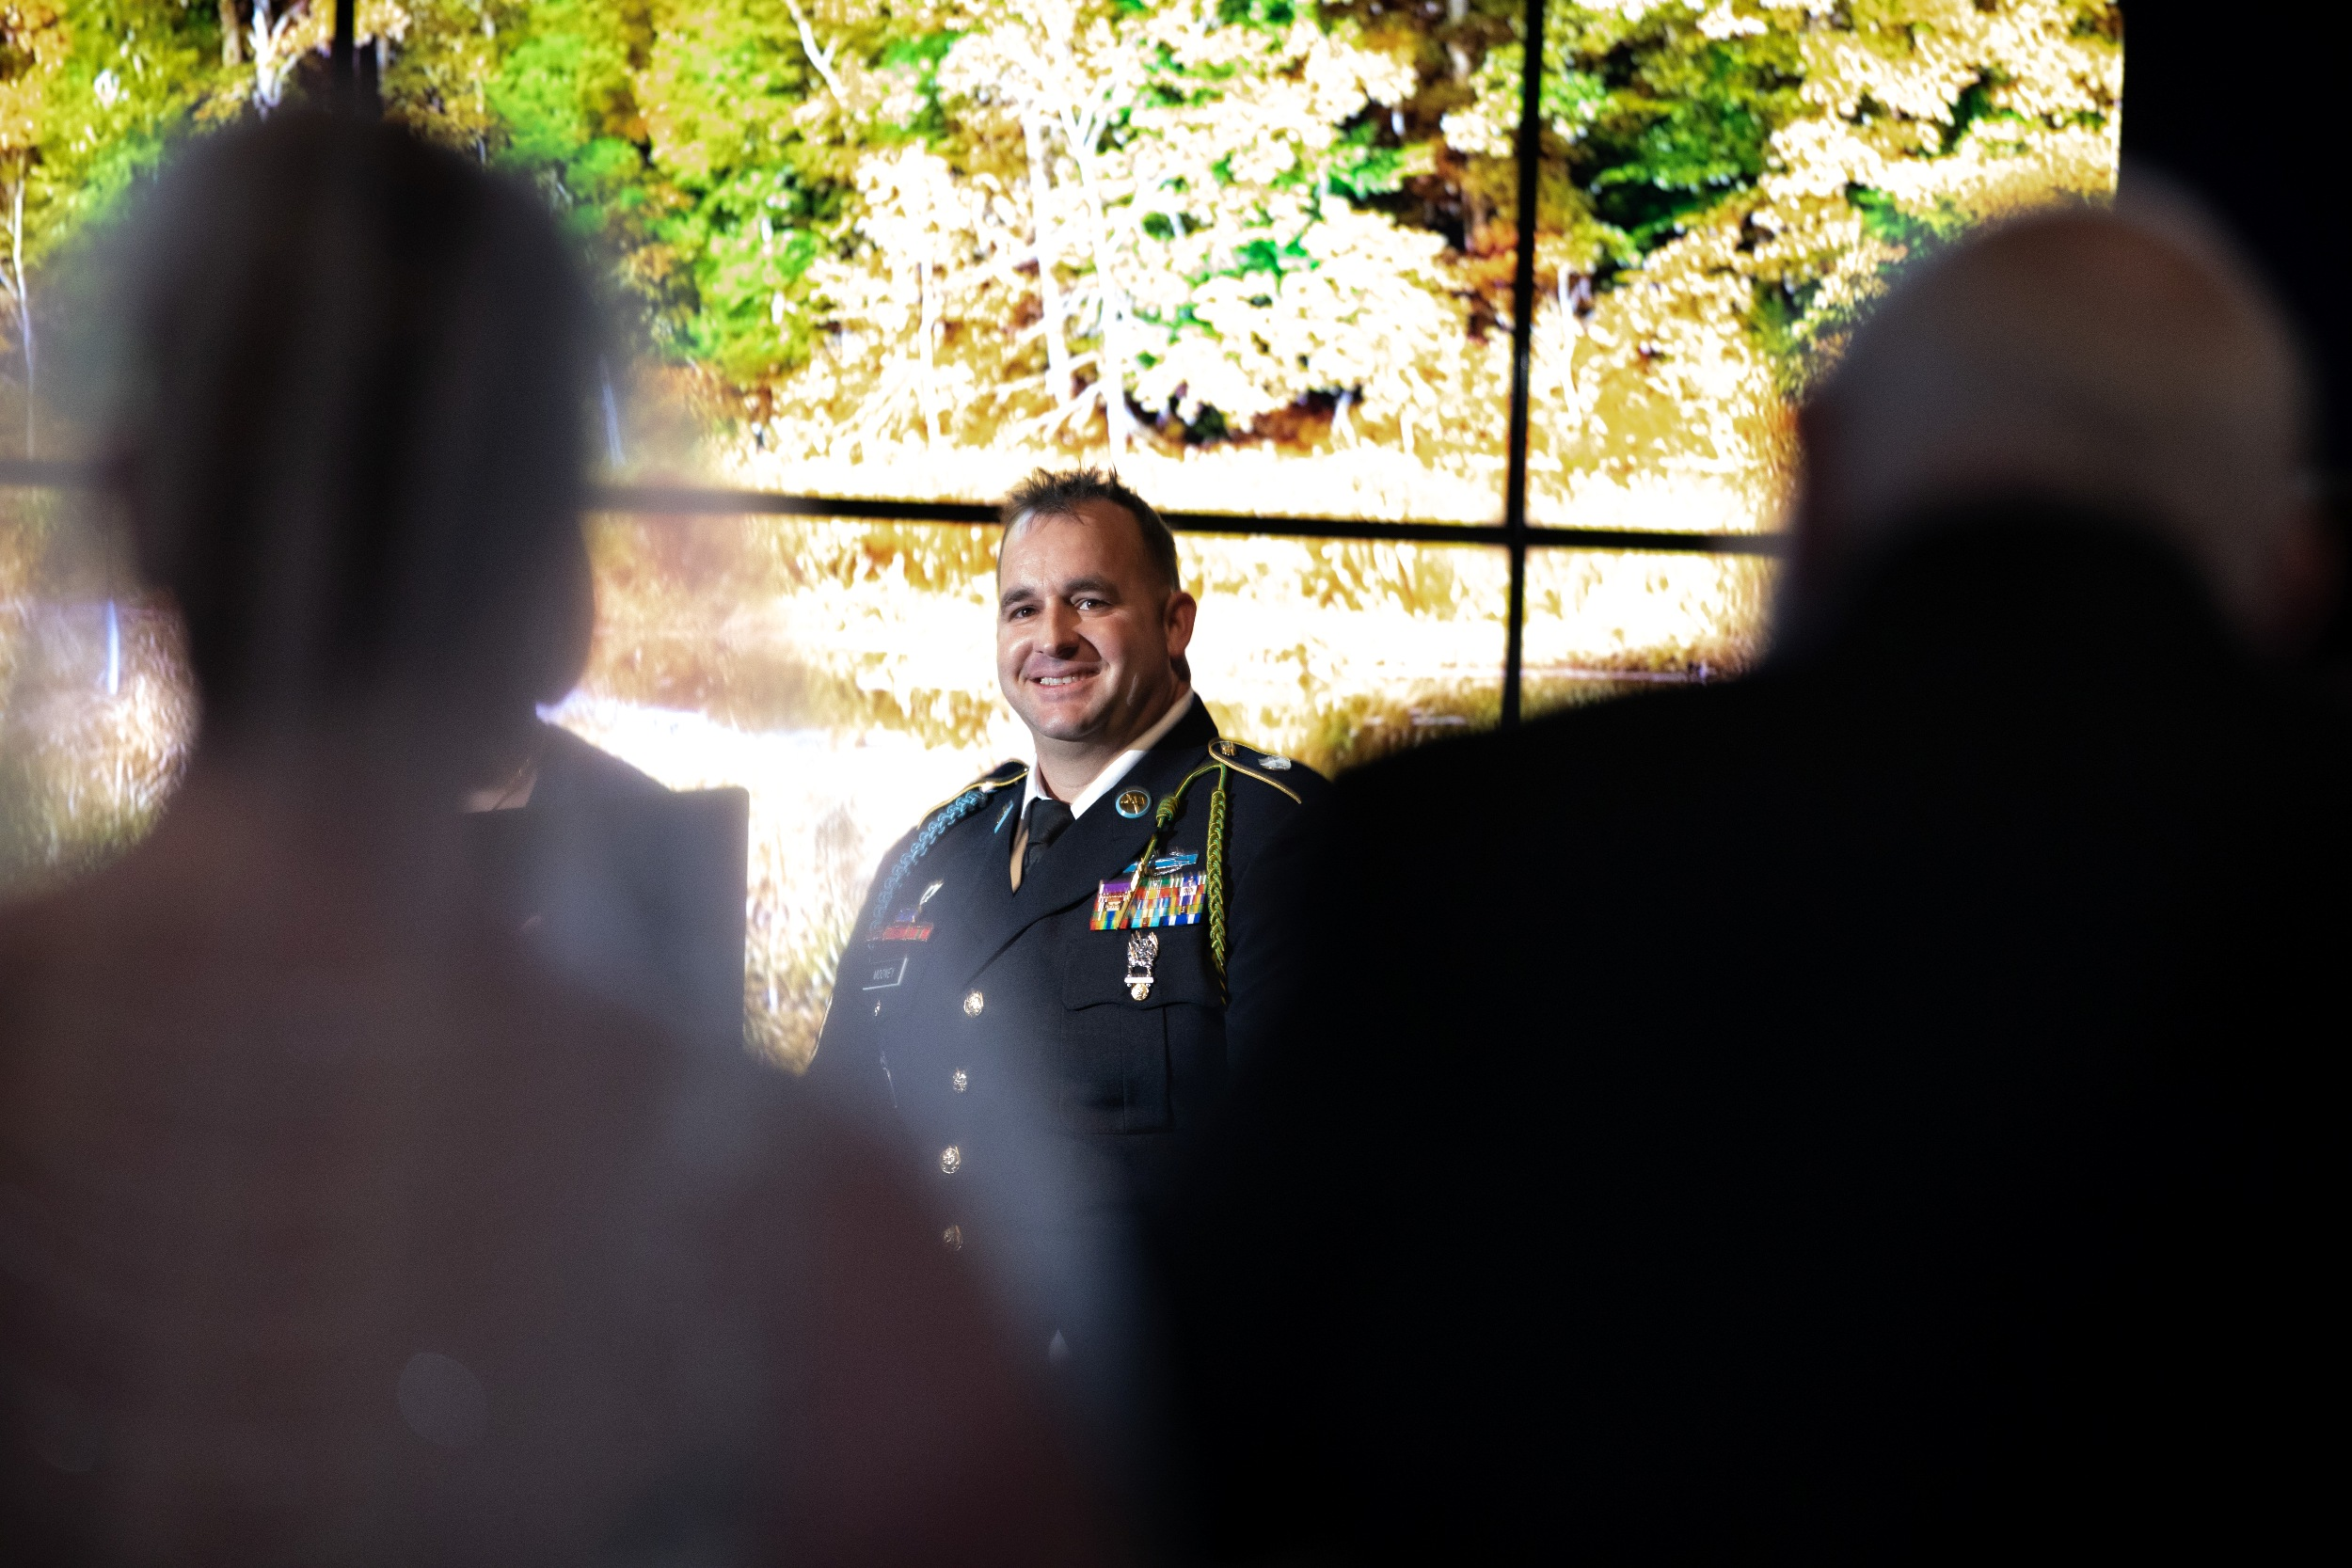 groom's reaction to the bride